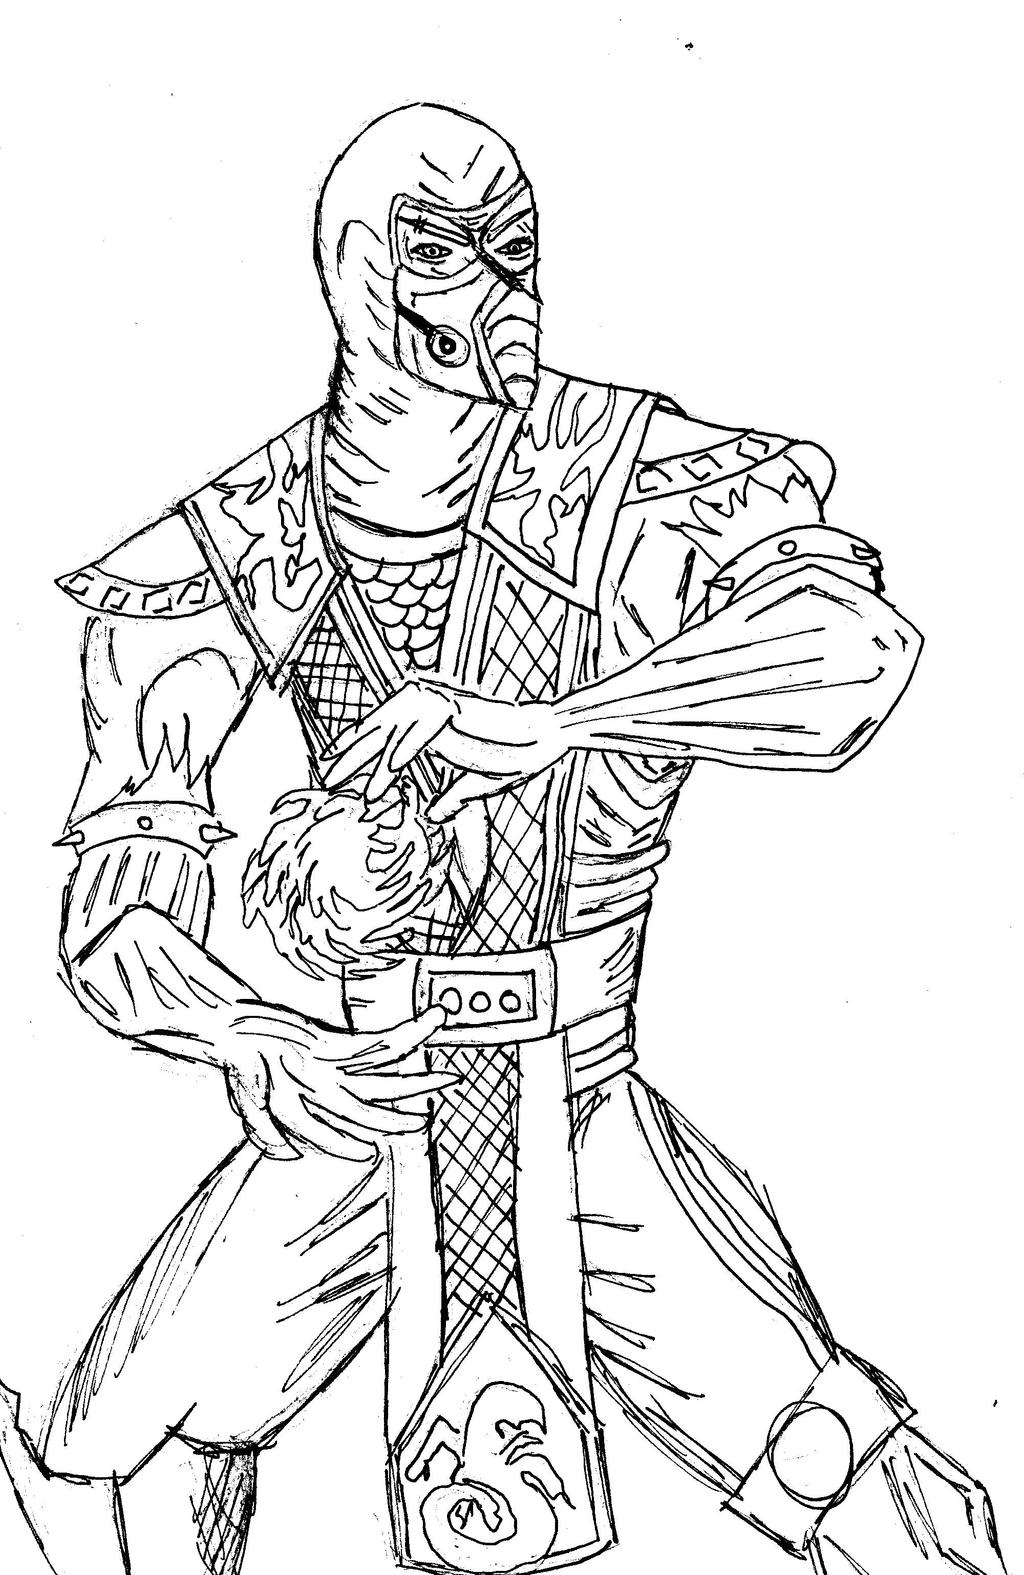 Line Art Zero : Sub zero line drawing by angelicnotions on deviantart